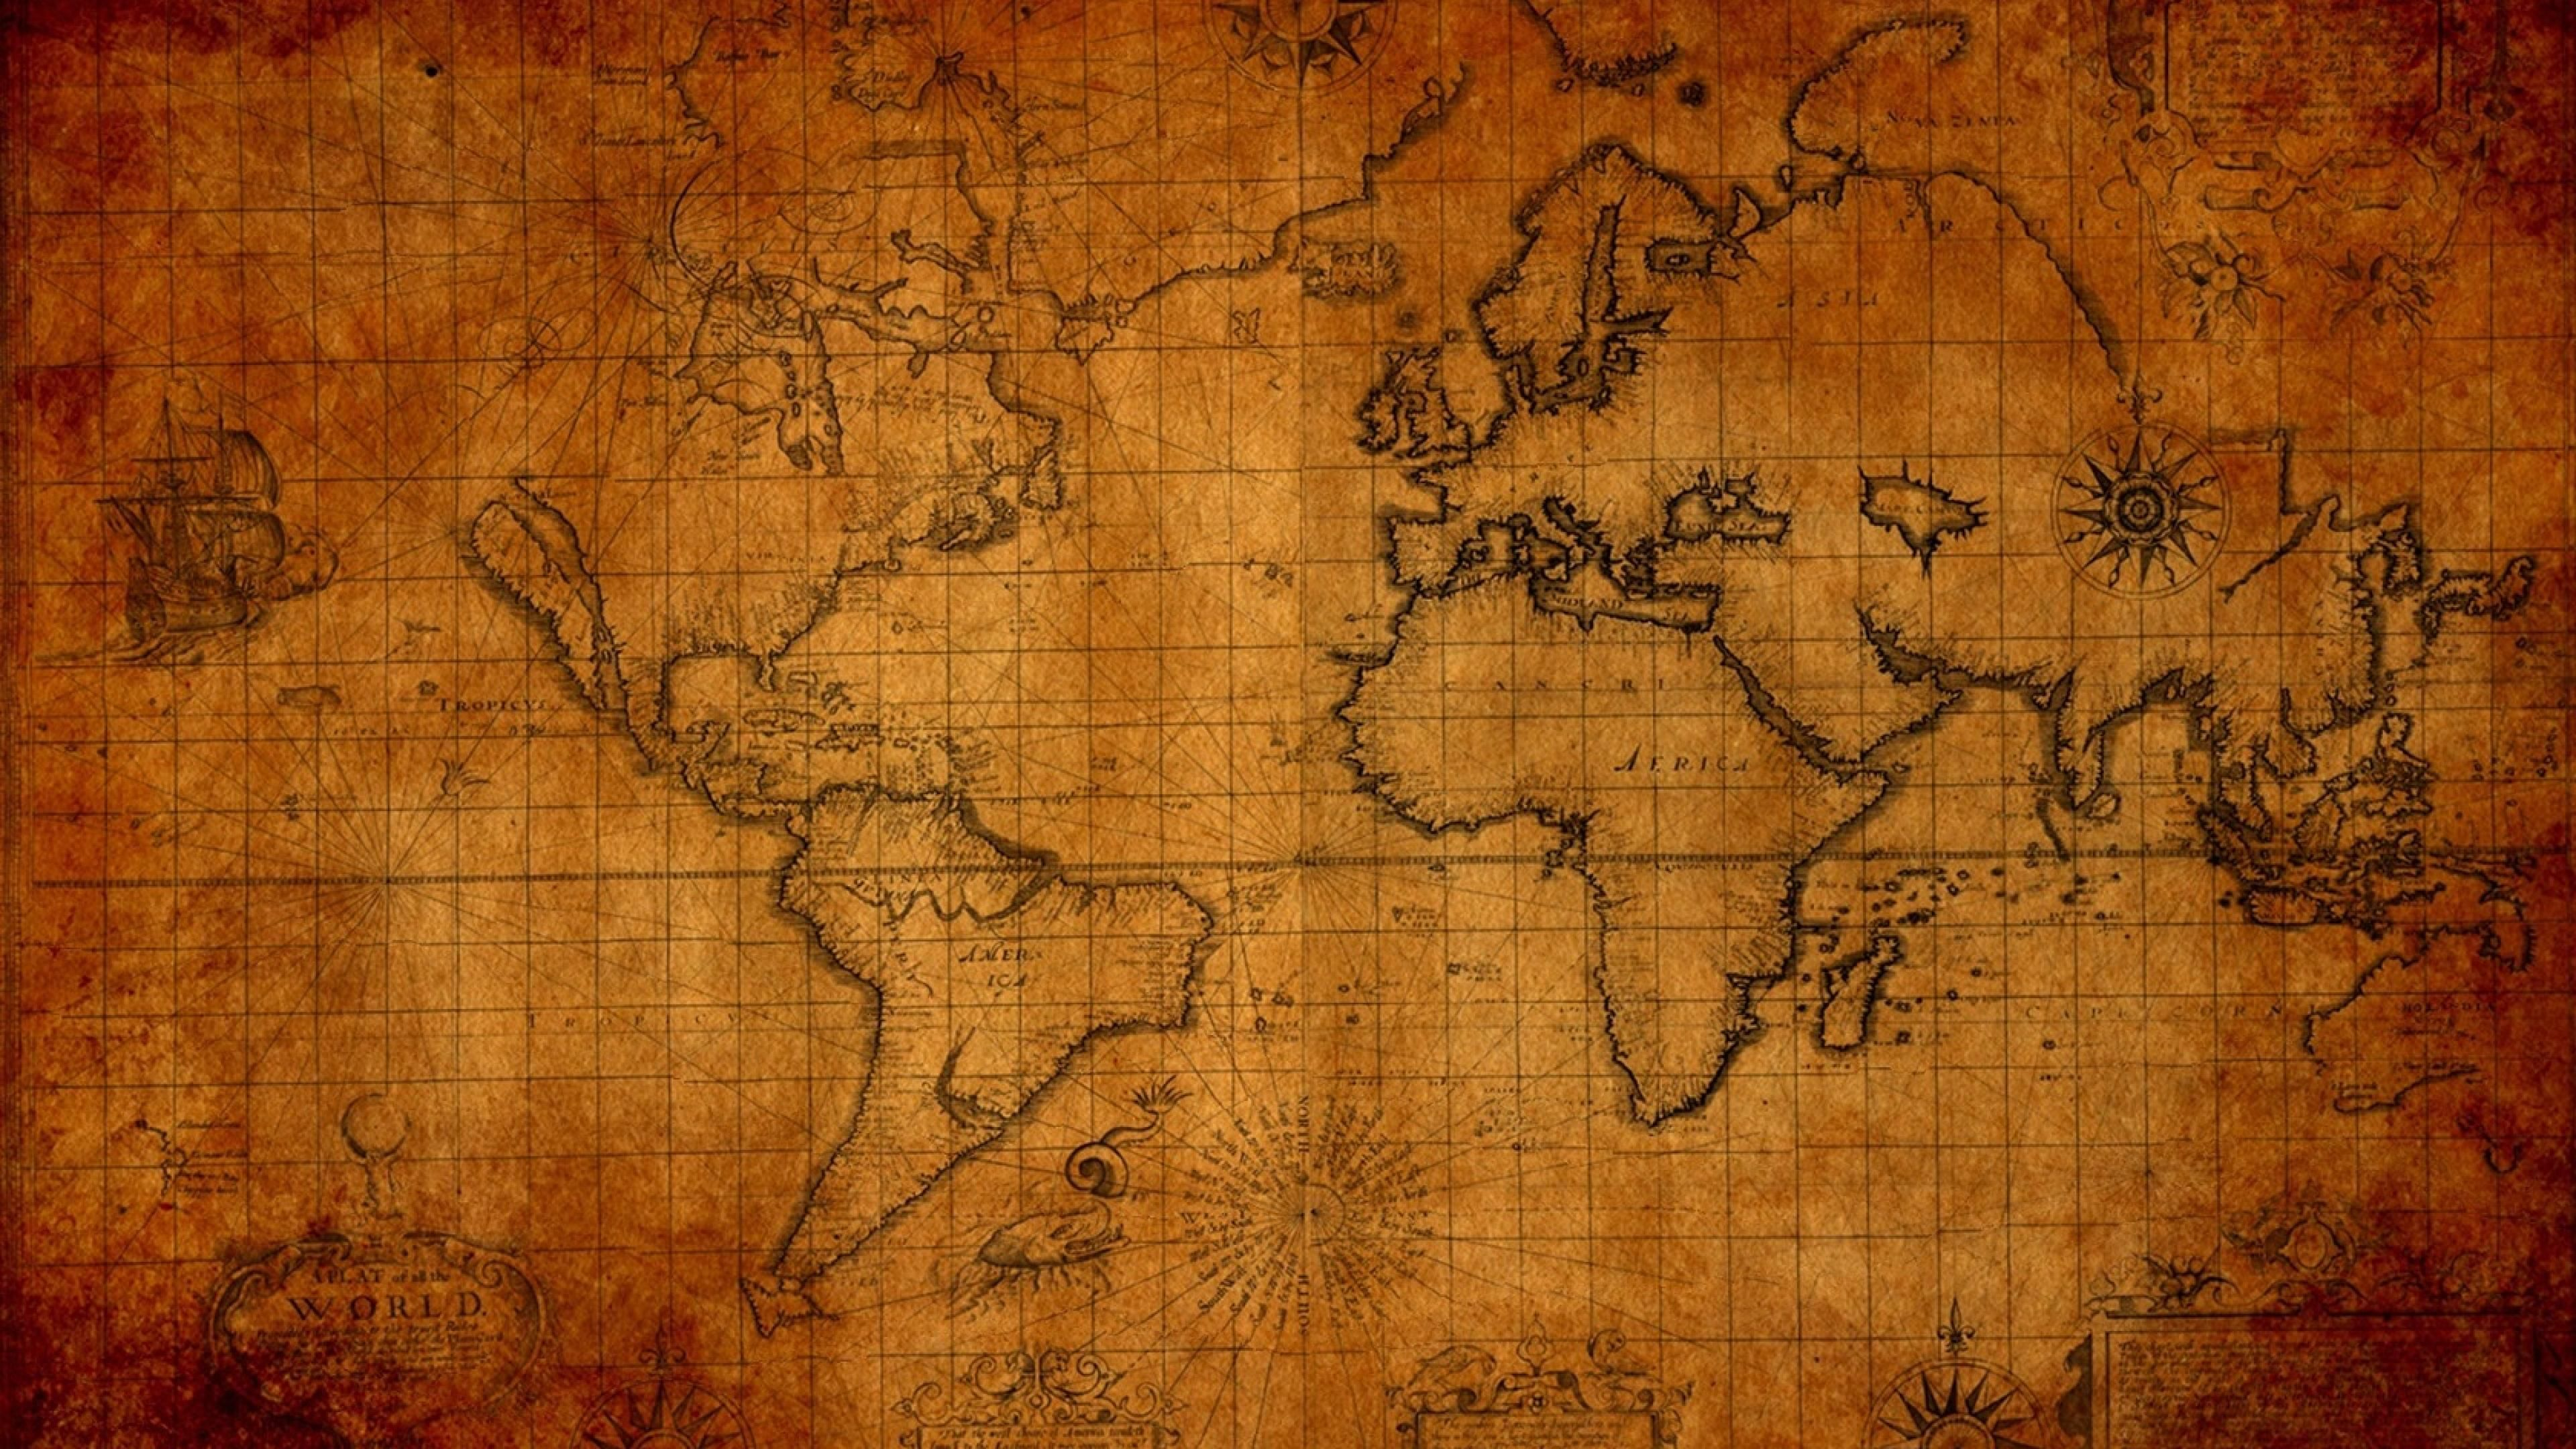 Old Map World Stuff Ultra 3840x2160 Hd Wallpaper 382504 Jpg 3840 2160 World Map Wallpaper Ancient World Maps Old World Maps